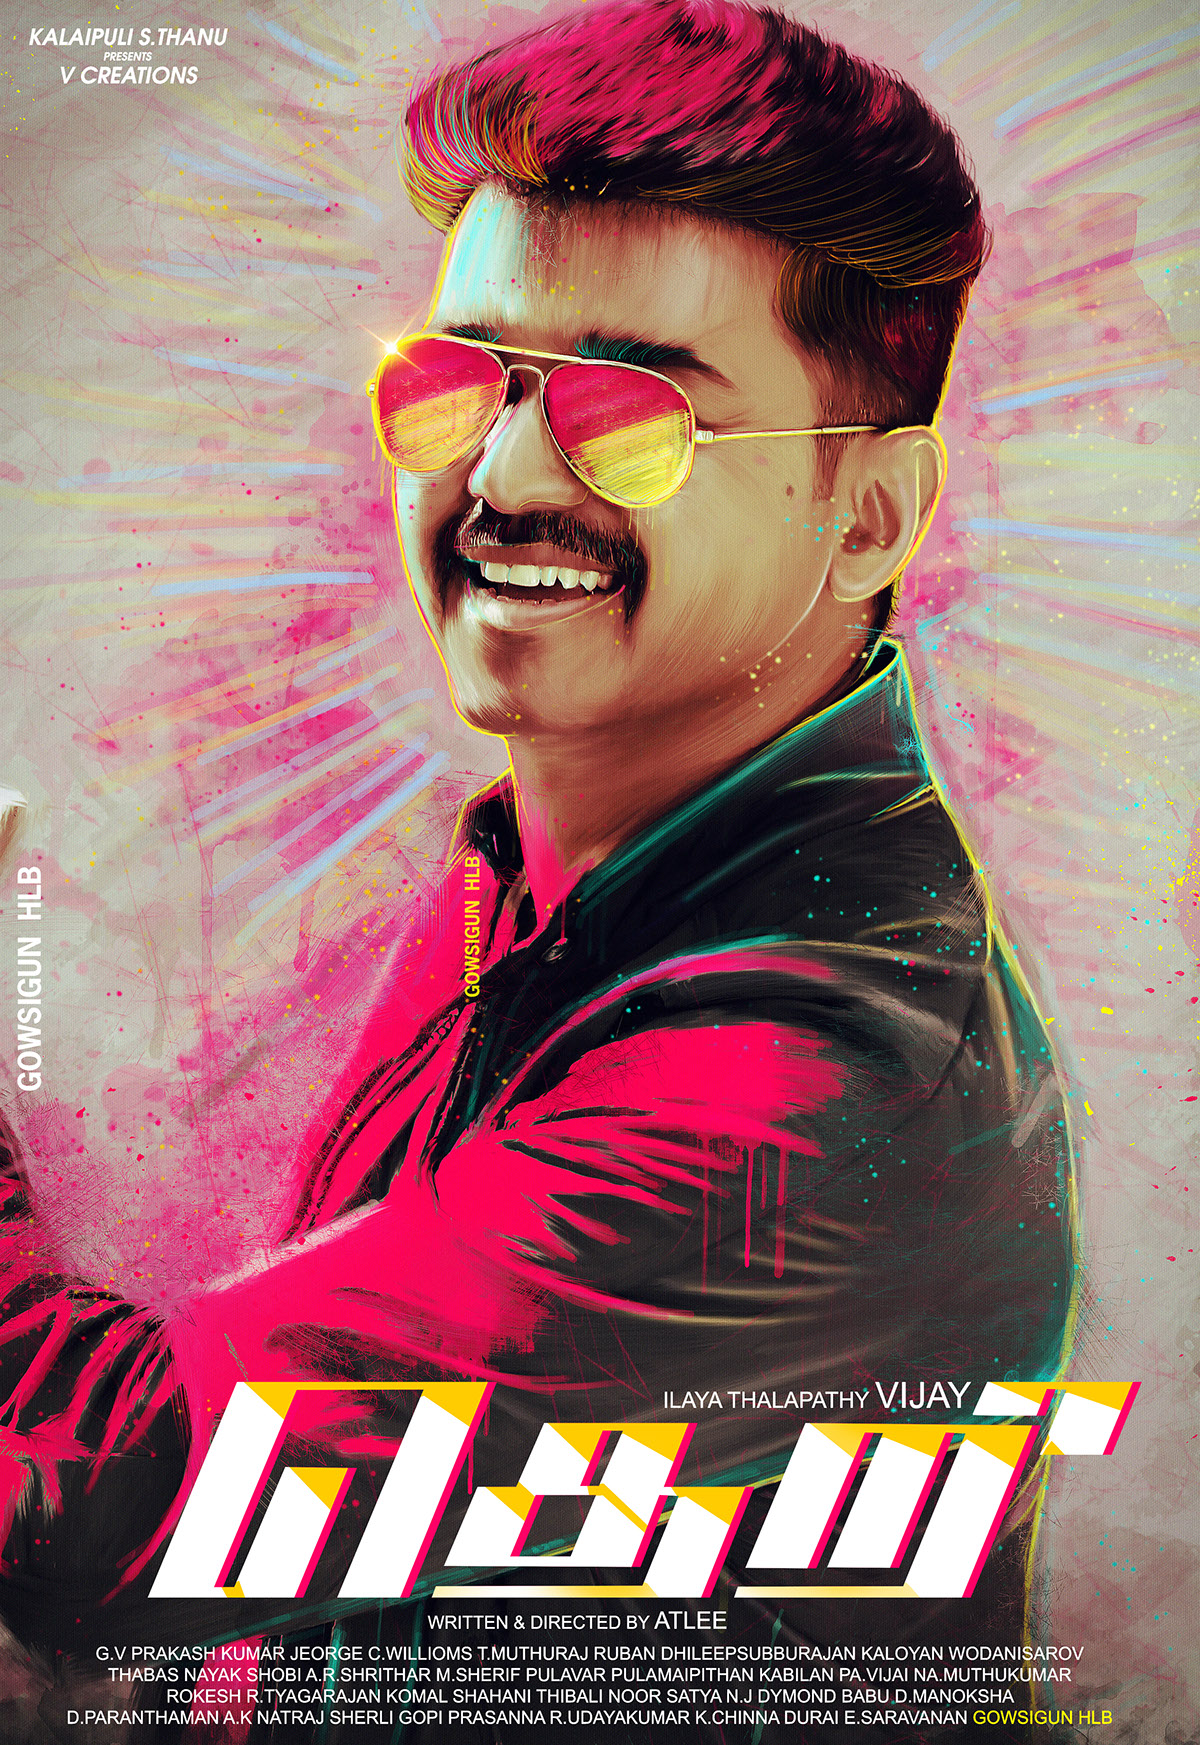 Theri tamil movie fan made poster by me on pantone canvas gallery - Vijay high quality images download ...